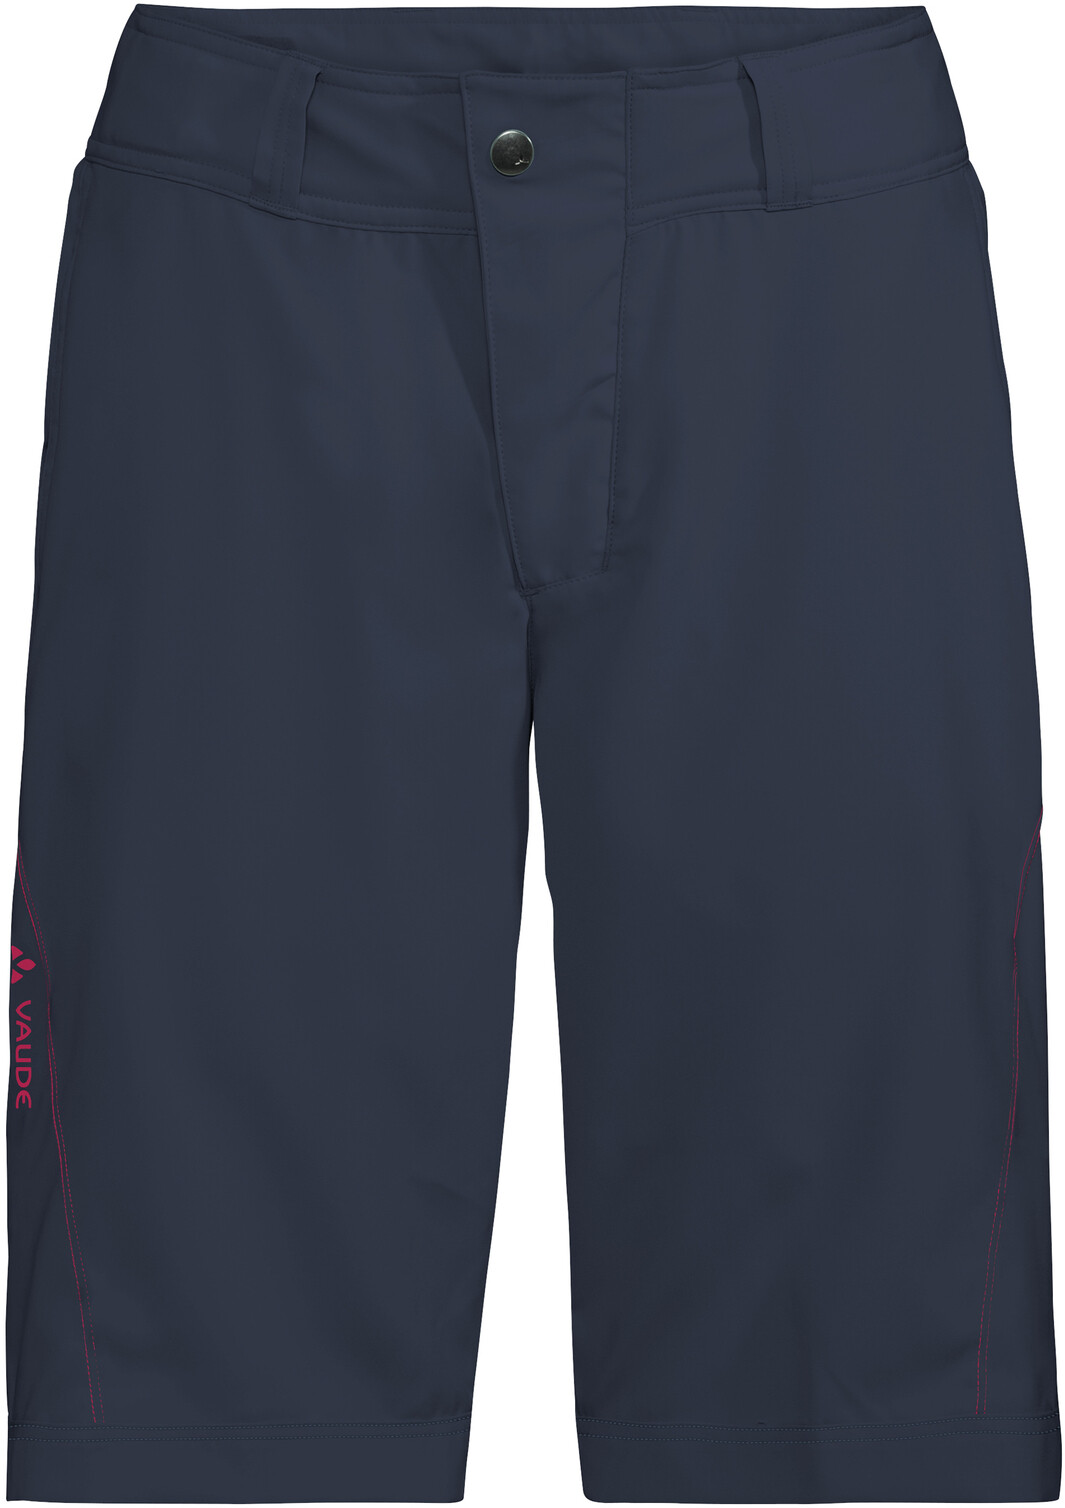 VAUDE Ledro Shorts Damer, eclipse (2019) | Trousers